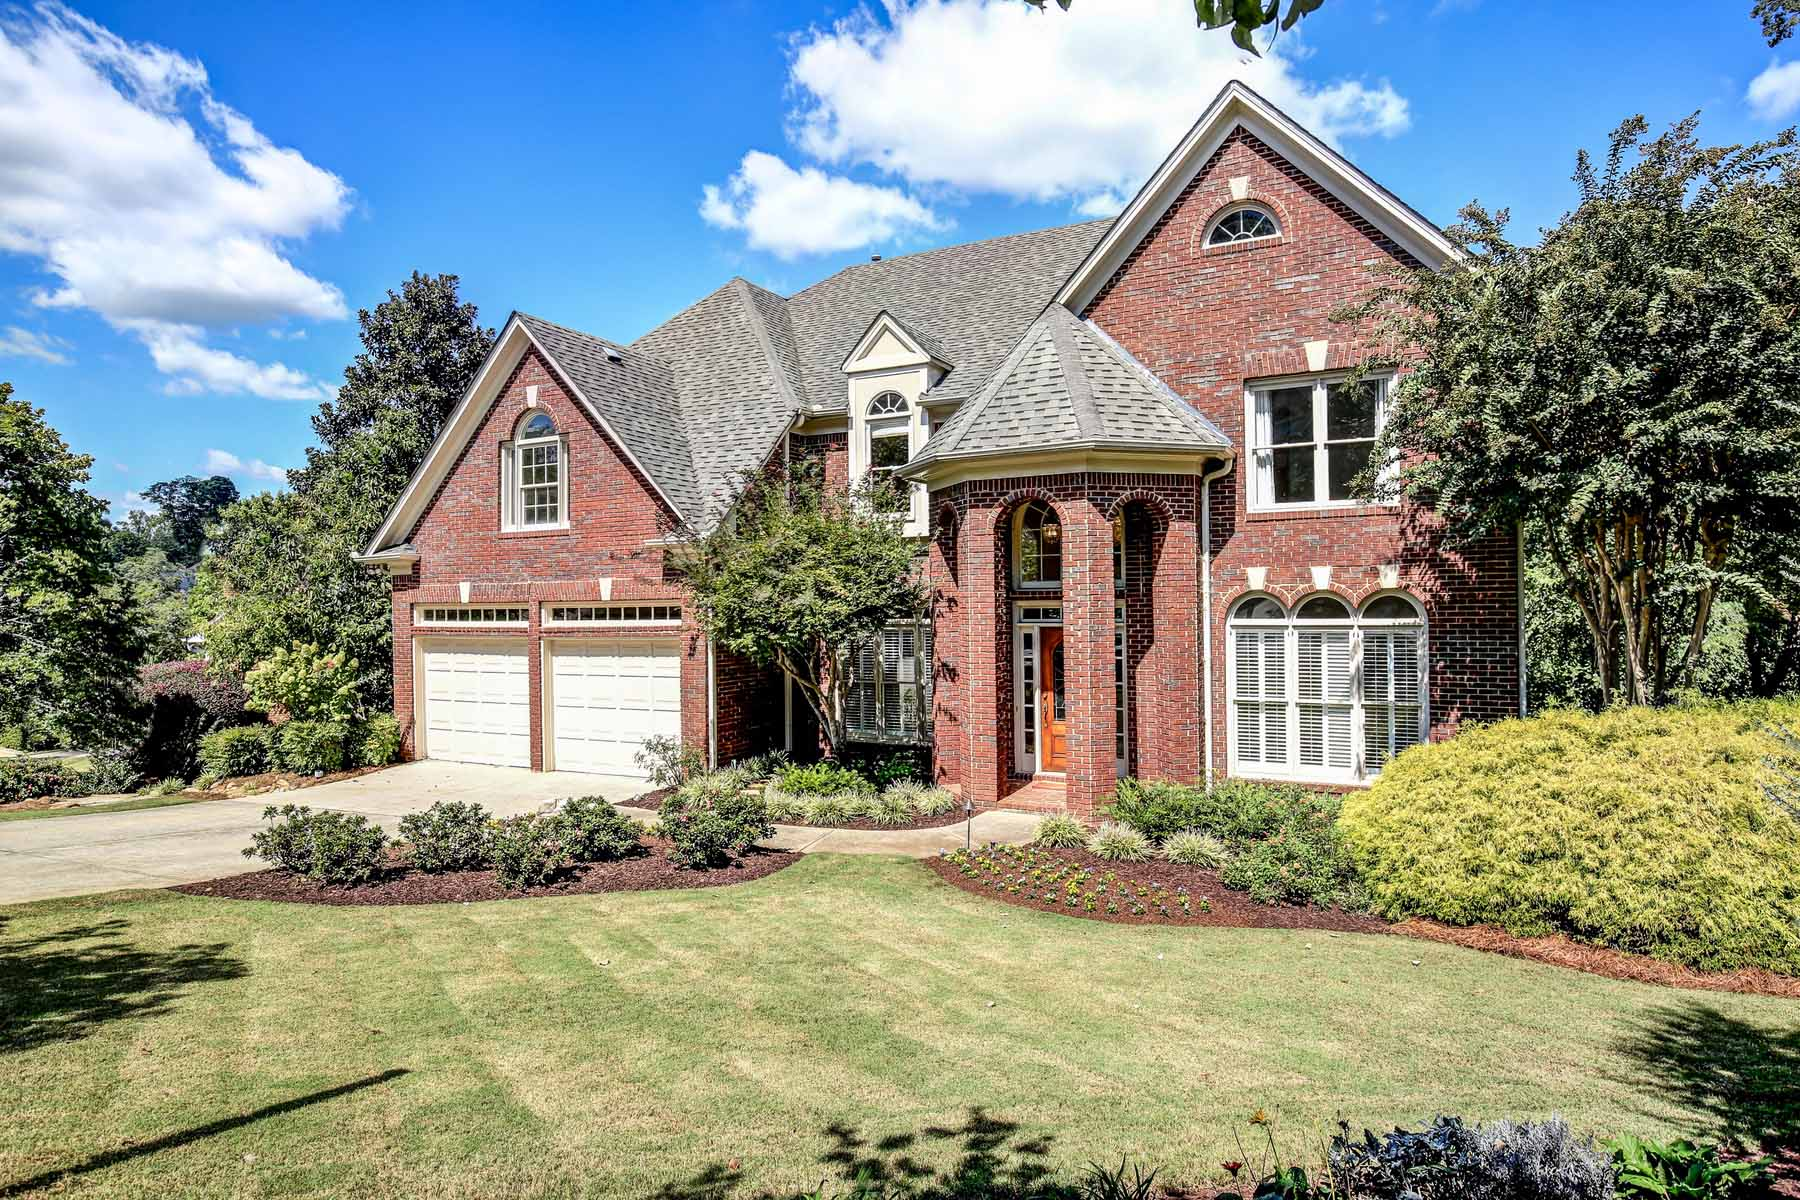 Single Family Home for Sale at Rarely Available Intown Updated Executive Home in Swim Community 1825 Grist Stone Court Druid Hills, Atlanta, Georgia, 30307 United States